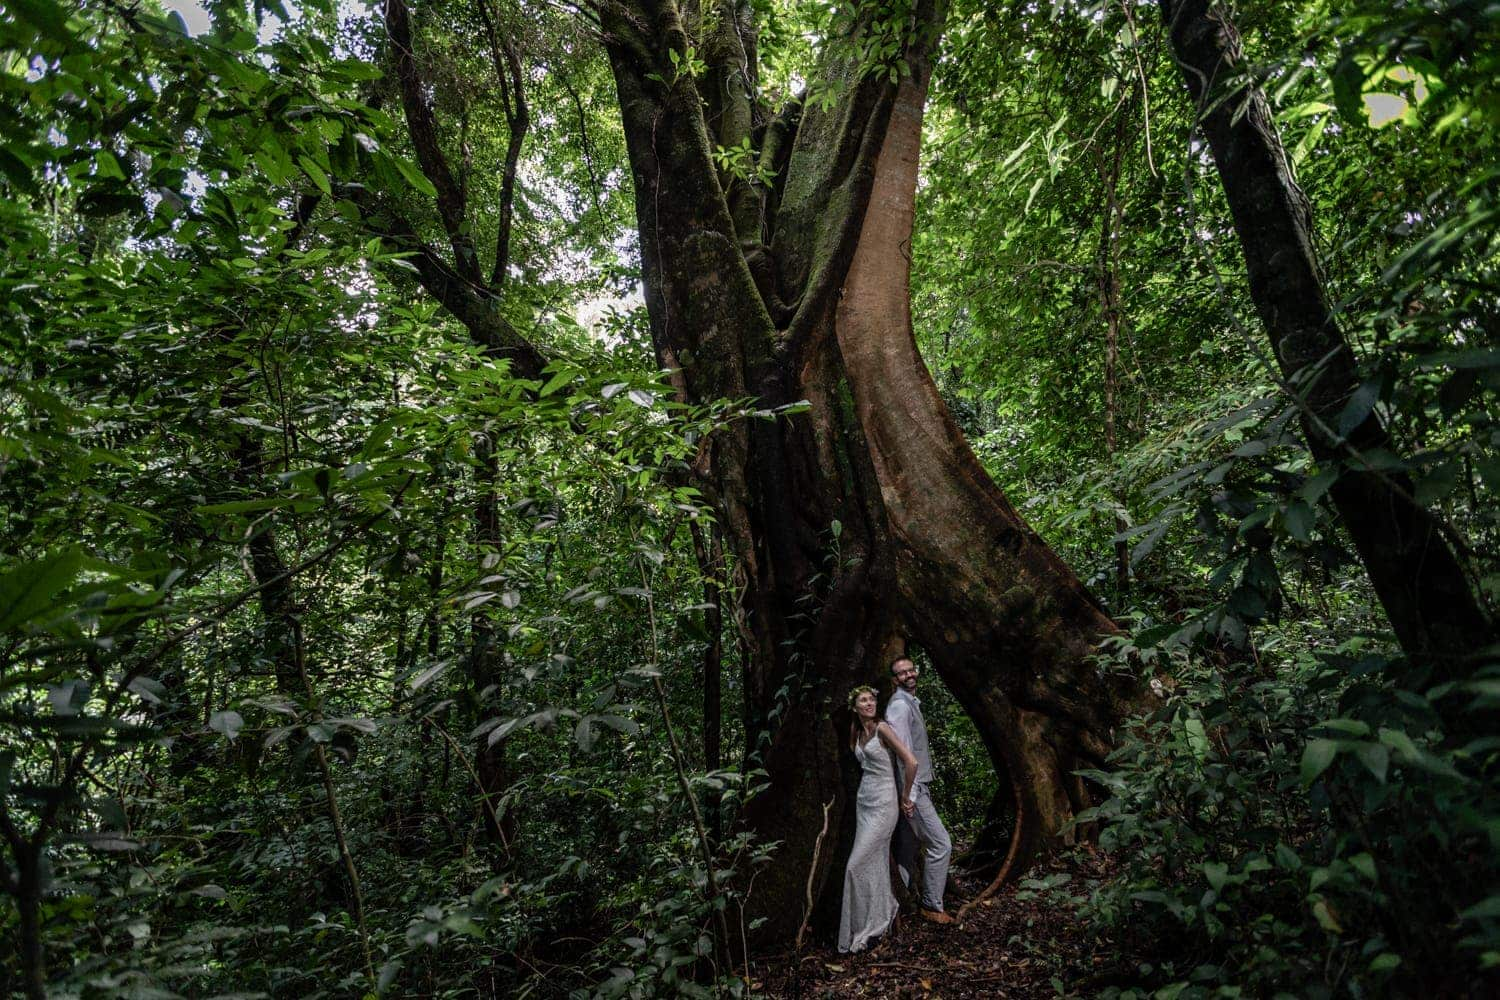 Happy bride and groom pose for photo in front of gigantic tree in rainforest.